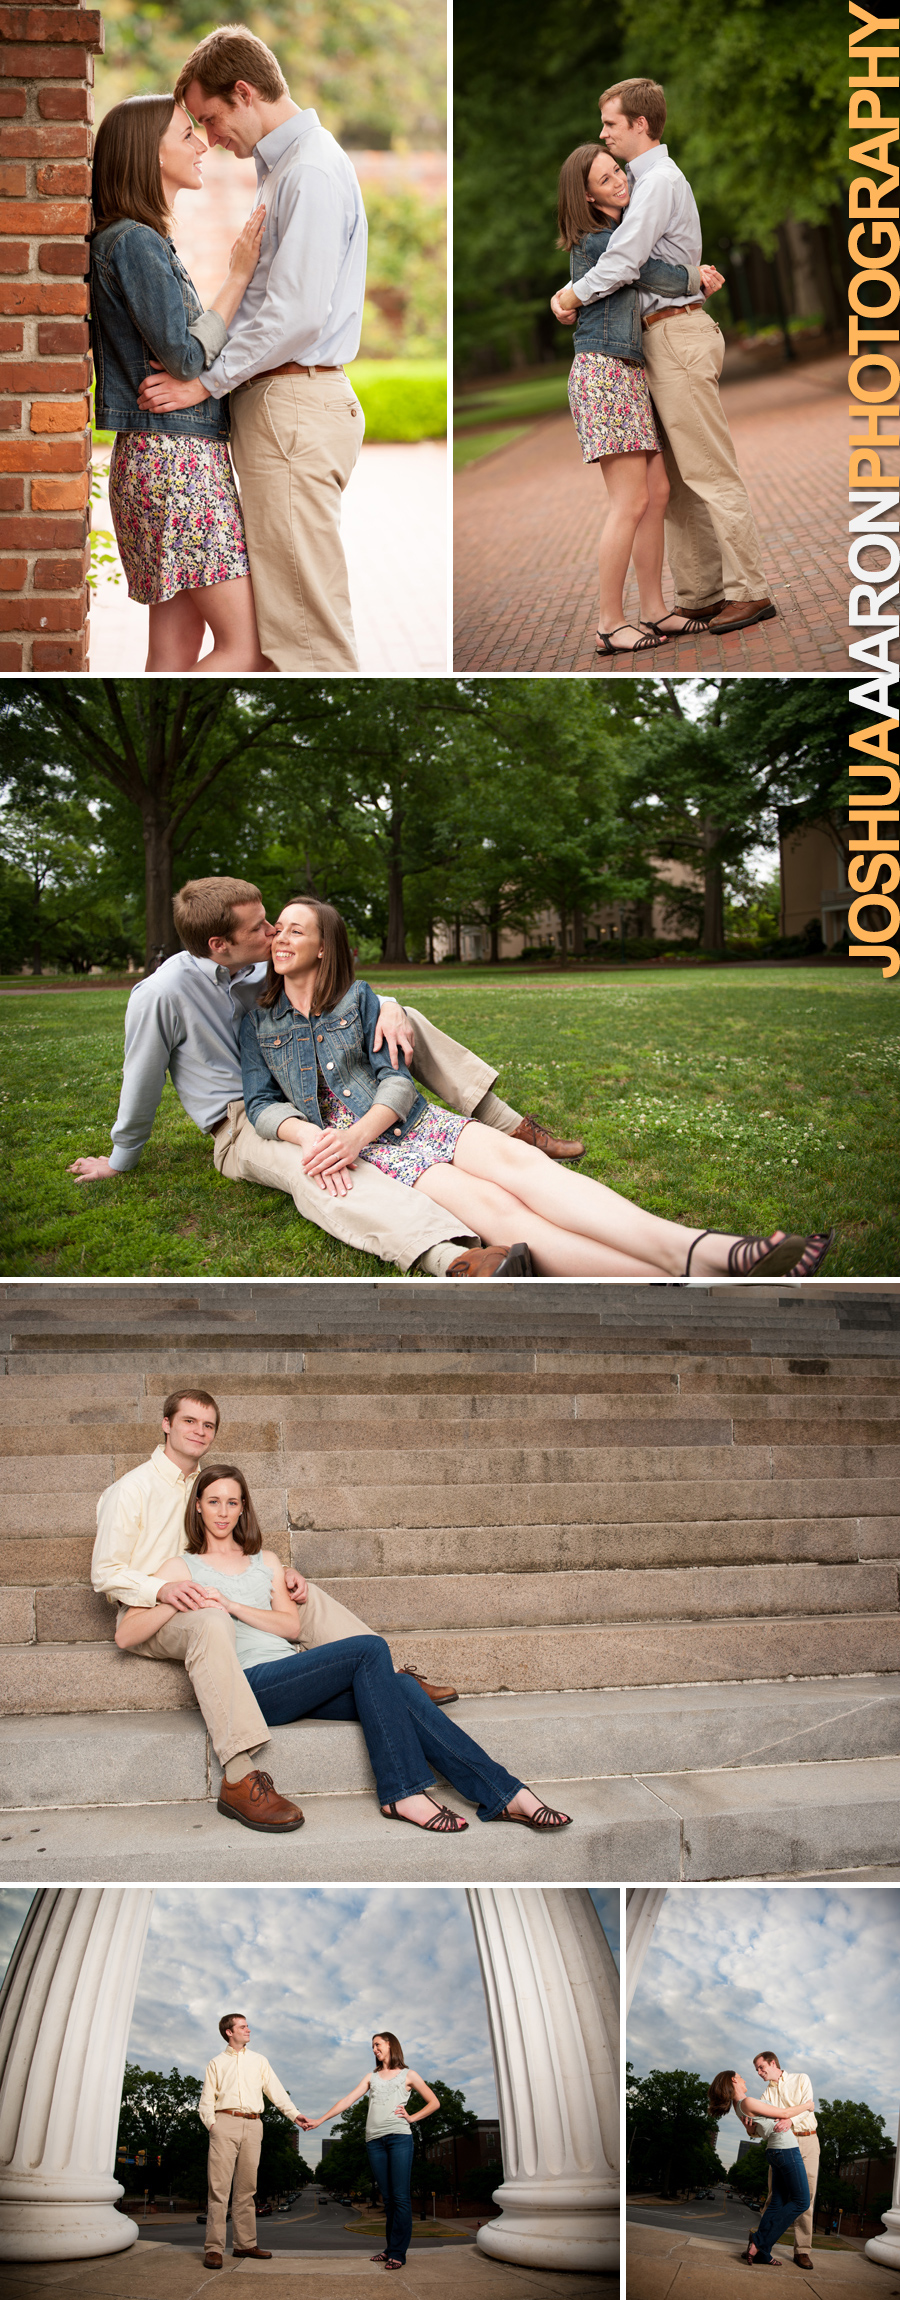 Alyssa and Chris engagements at USC